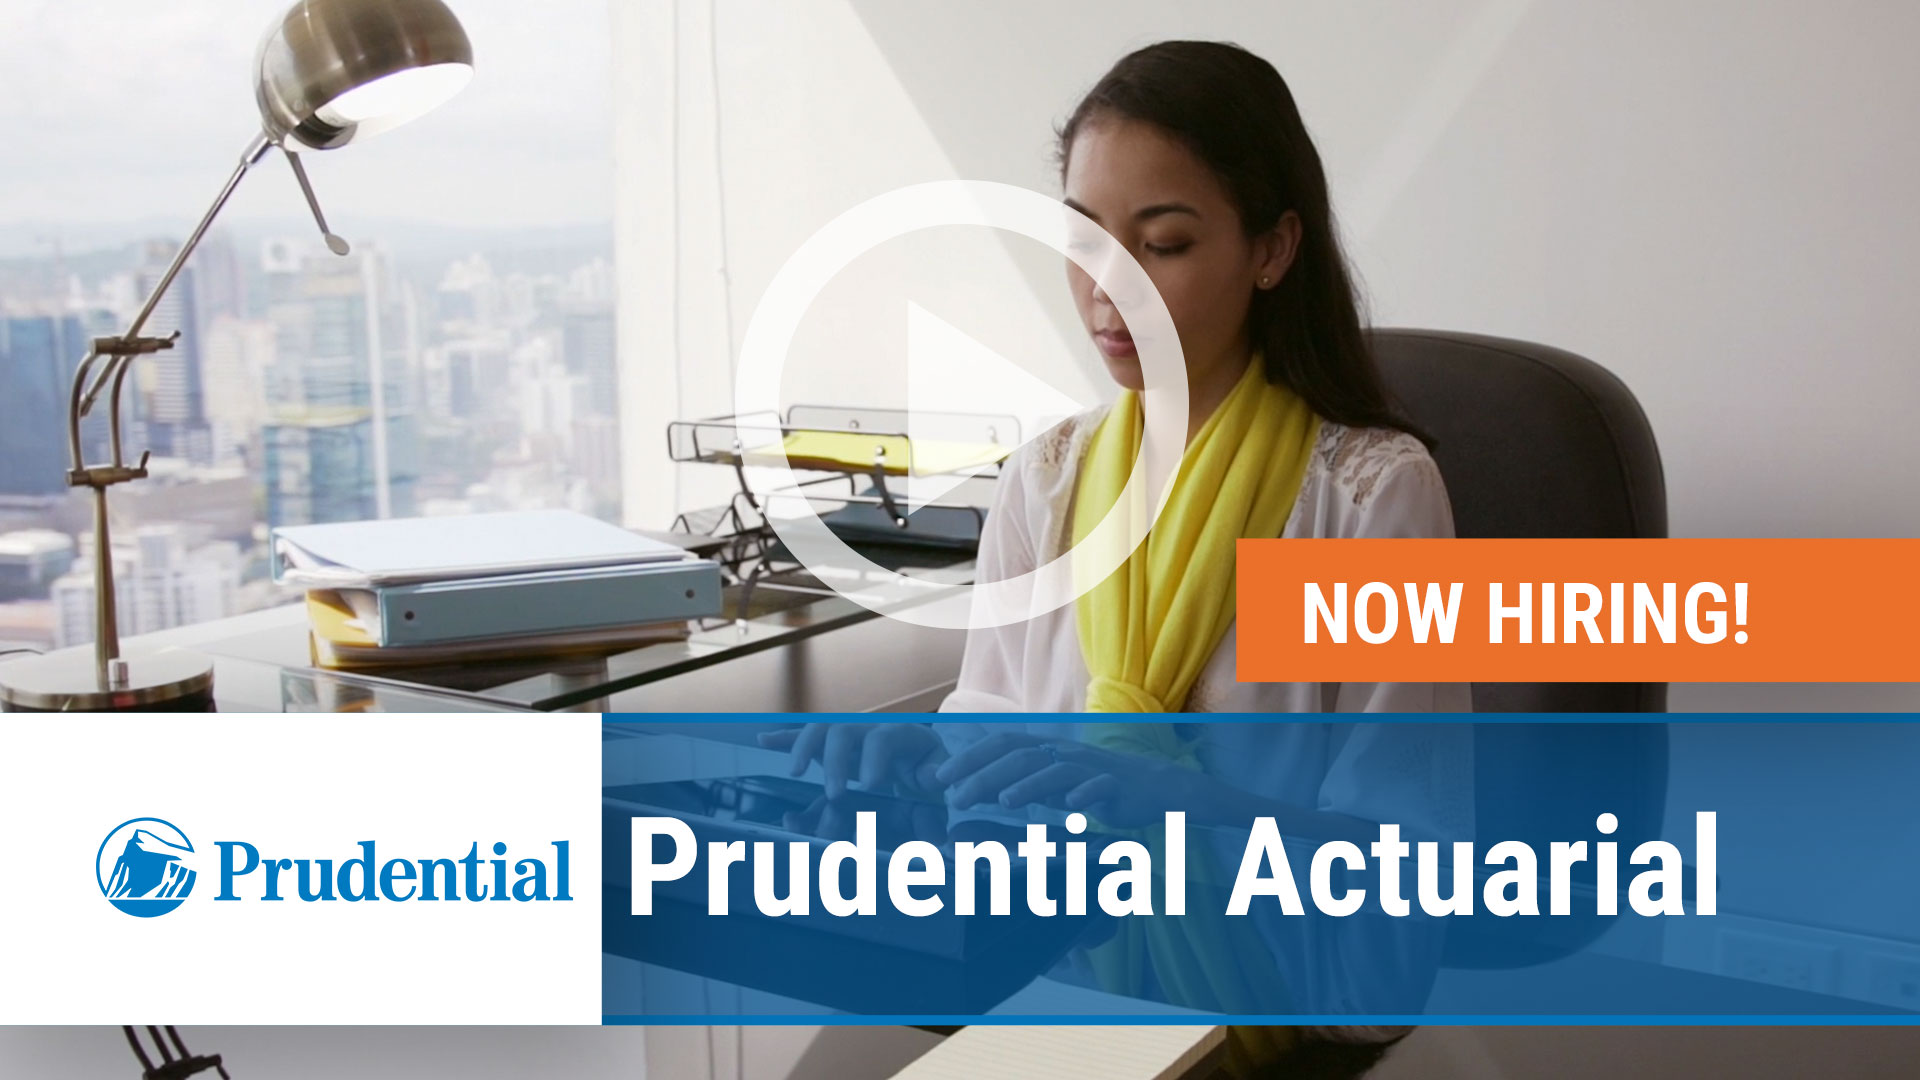 Watch our careers video for available job opening Prudential Actuarial in Hartford CT, Newark NJ